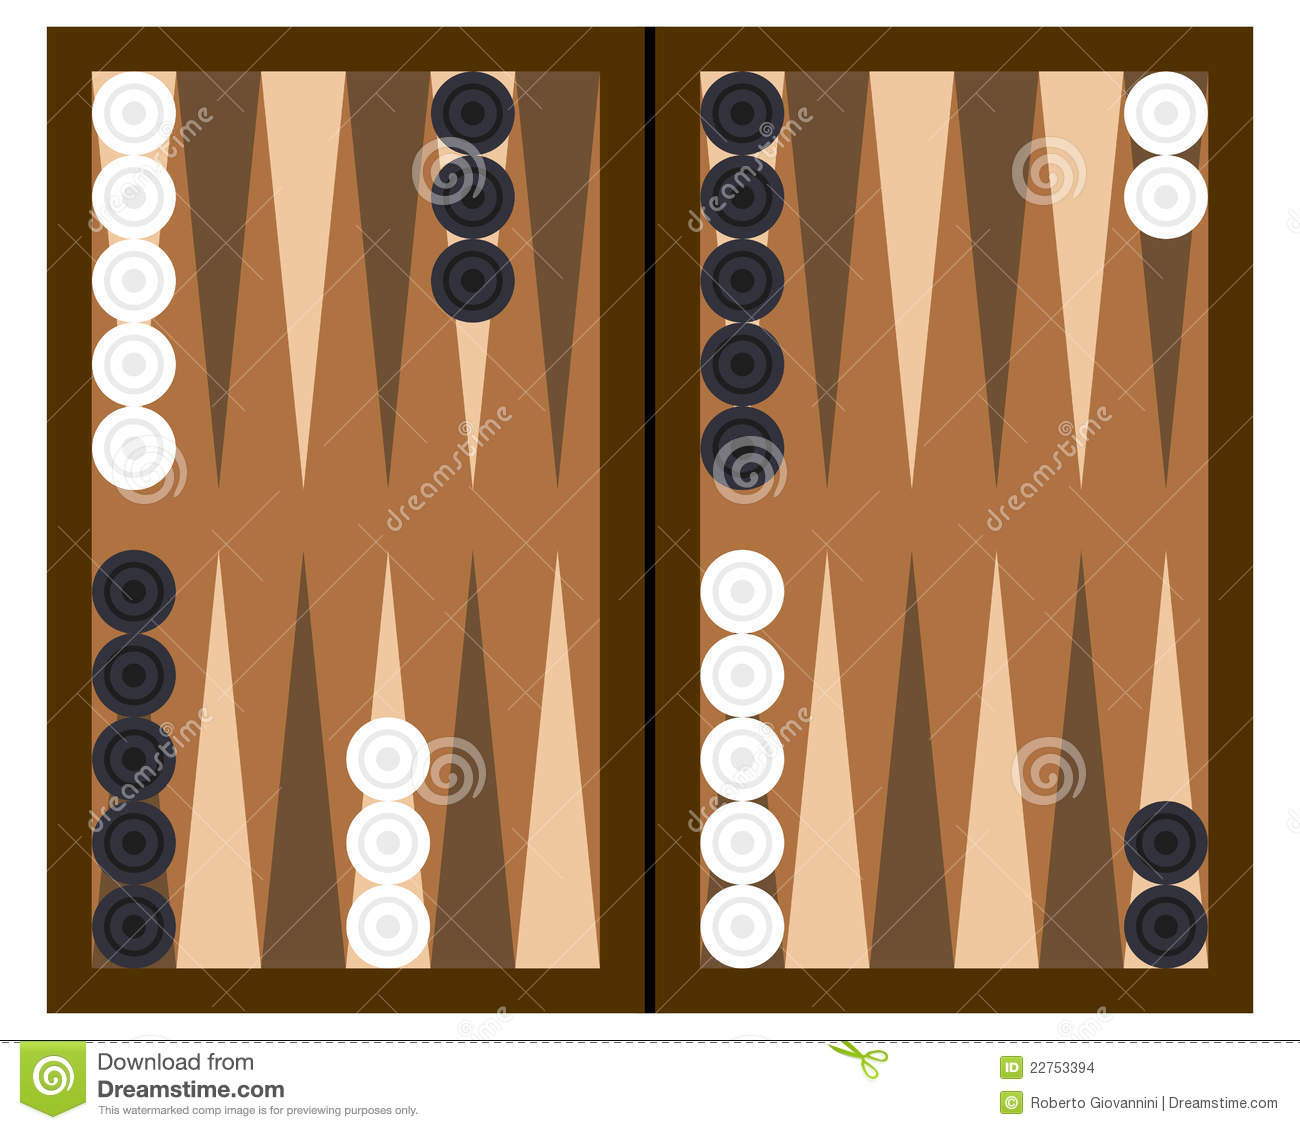 photograph about Printable Backgammon Board referred to as Backgammon Board Template. printable ludo activity board no cost